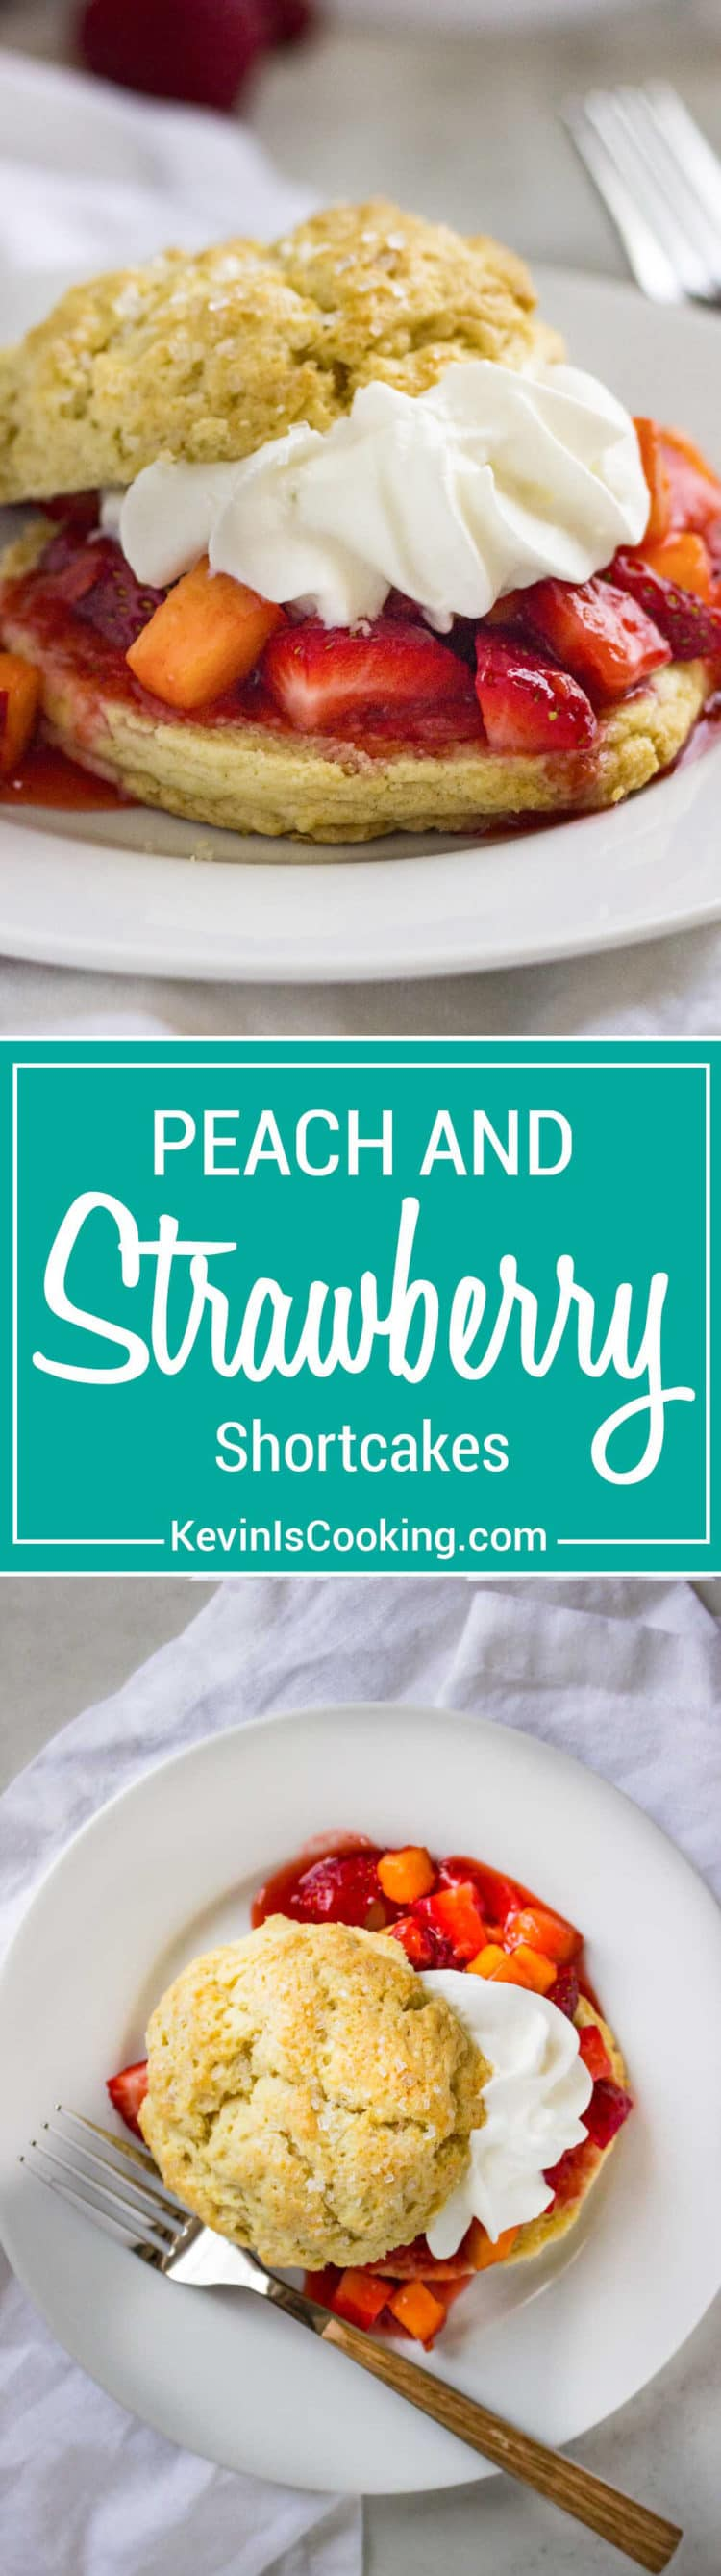 Peach and Strawberry Shortcake is the perfect dessert to end a Summer family dinner. Fresh fruit, light and crumbly shortcake all topped with whipped cream… a sure hit every time!